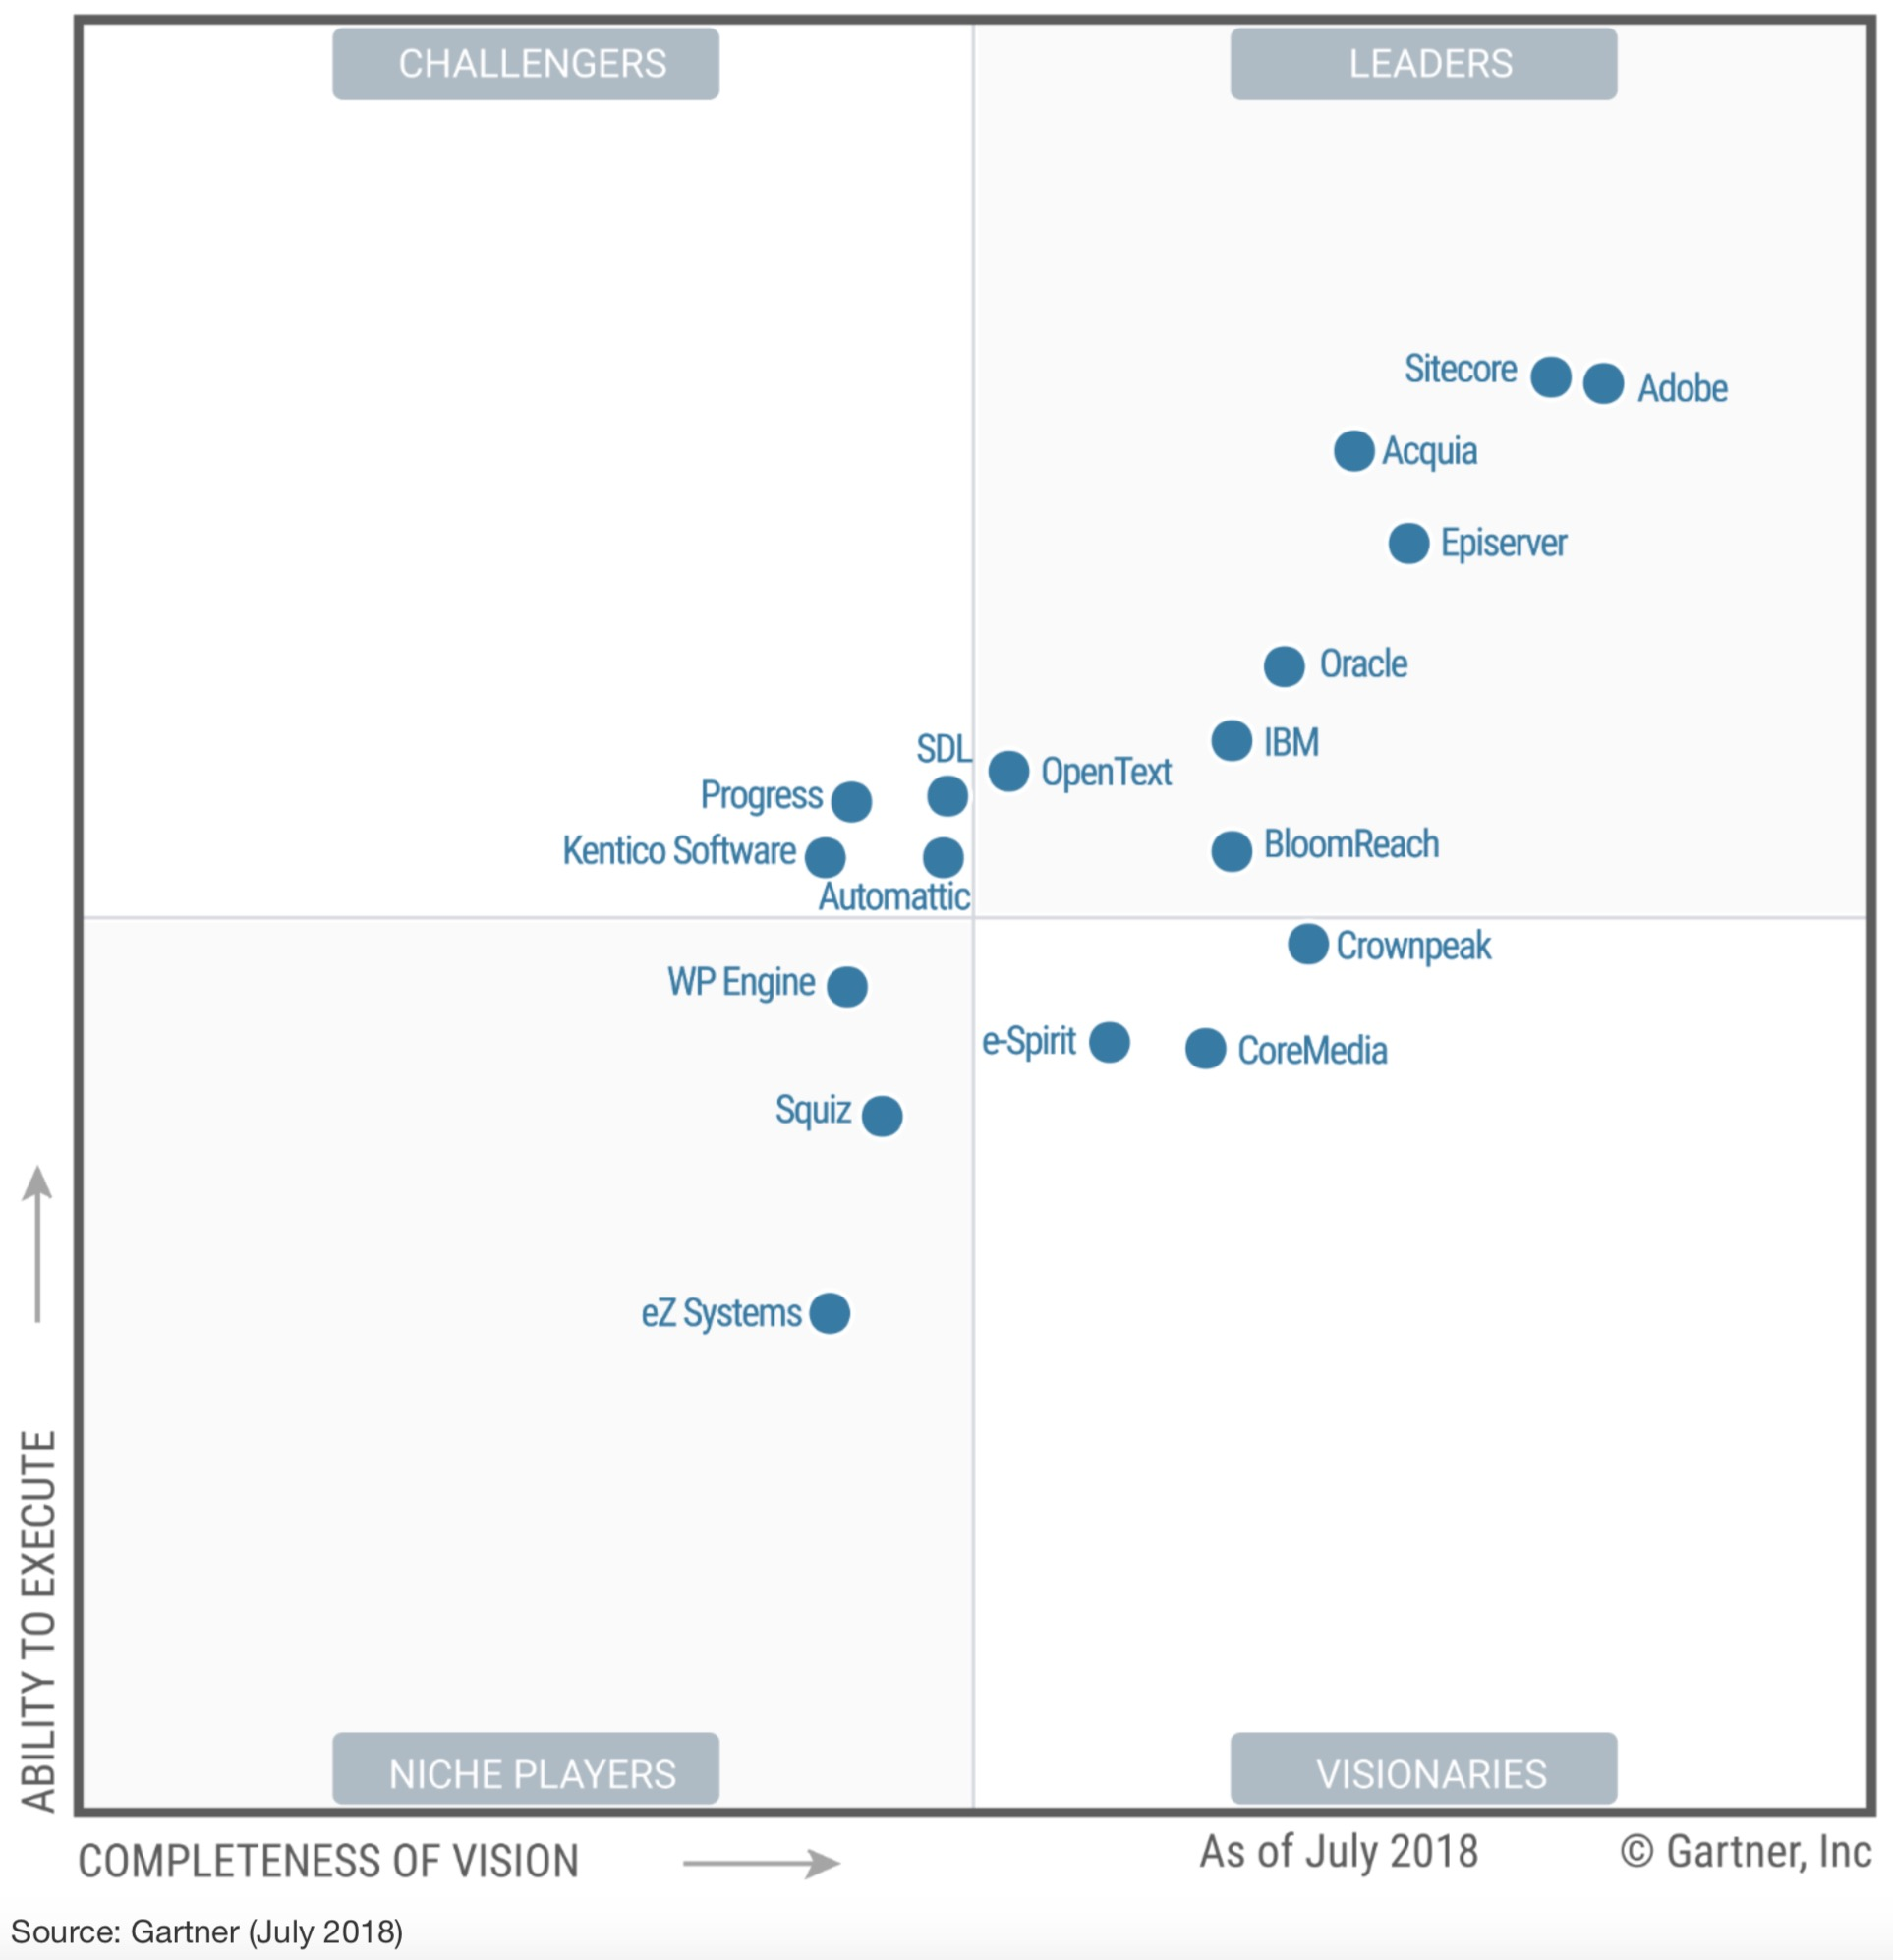 The 2018 Gartner Magic Quadrant for Web Content Management